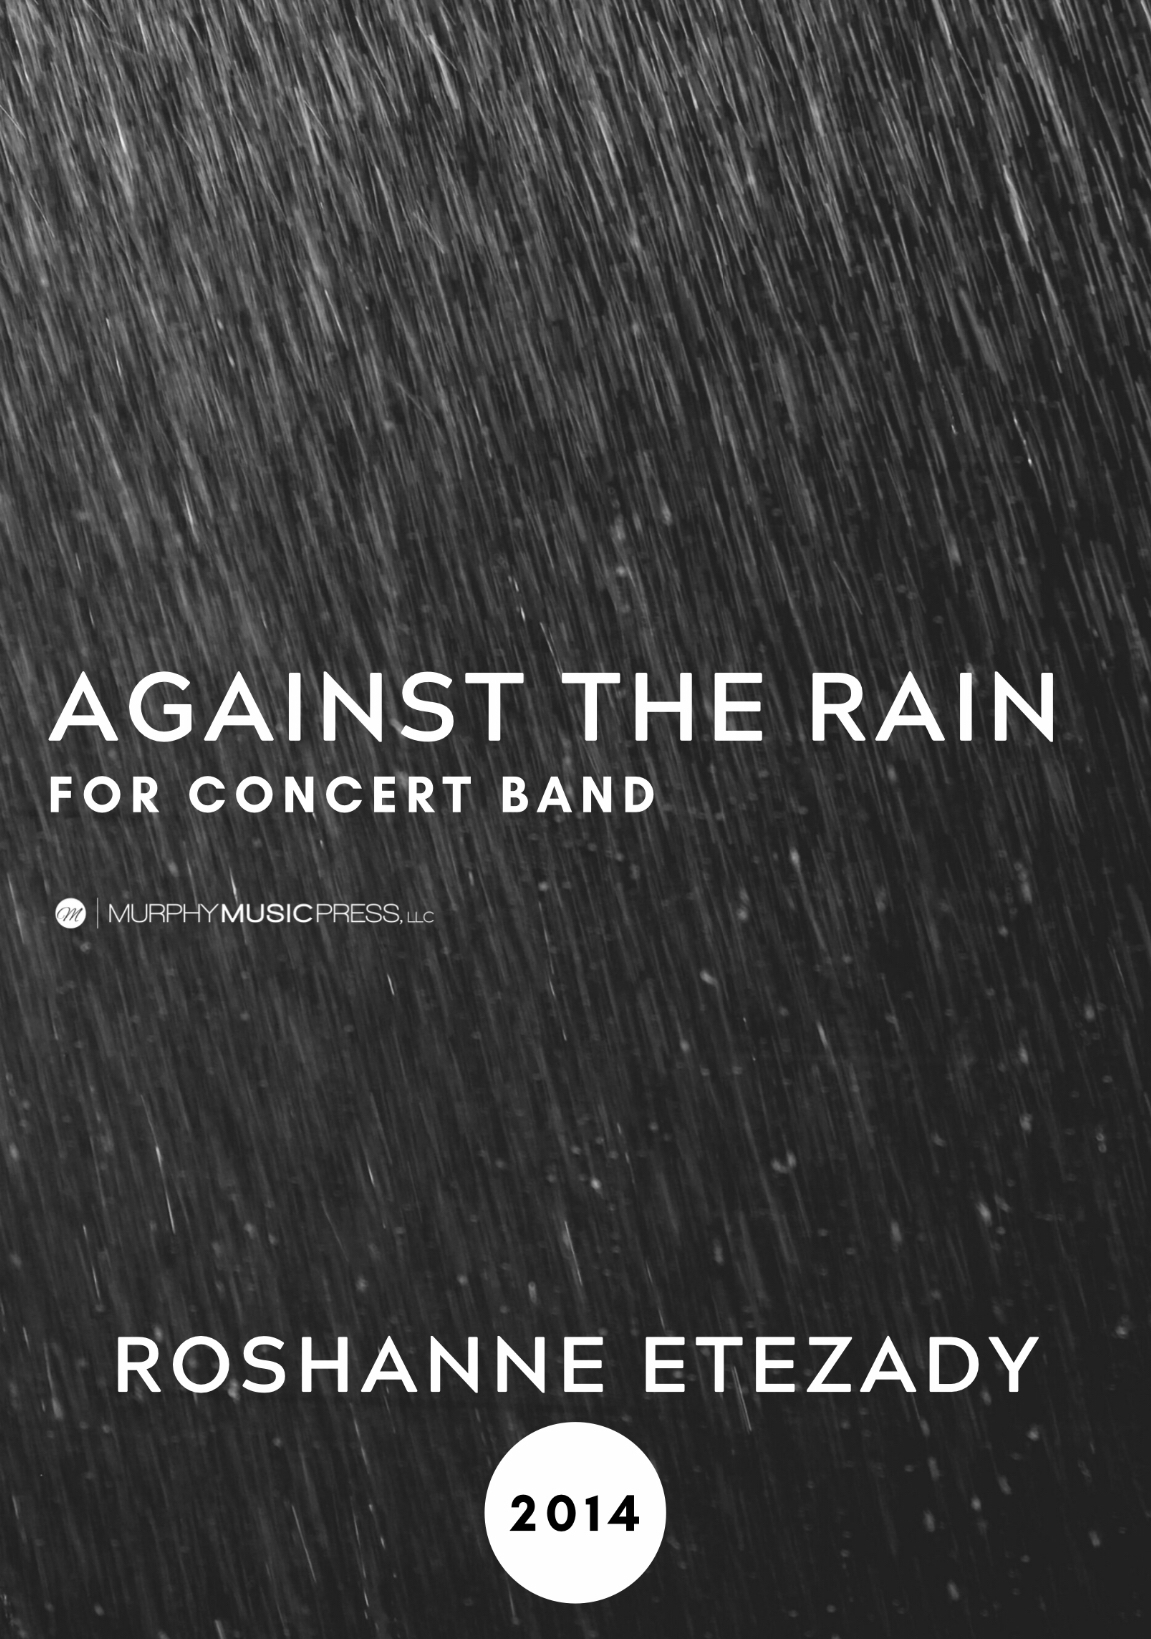 Against The Rain by Roshanne Etezady